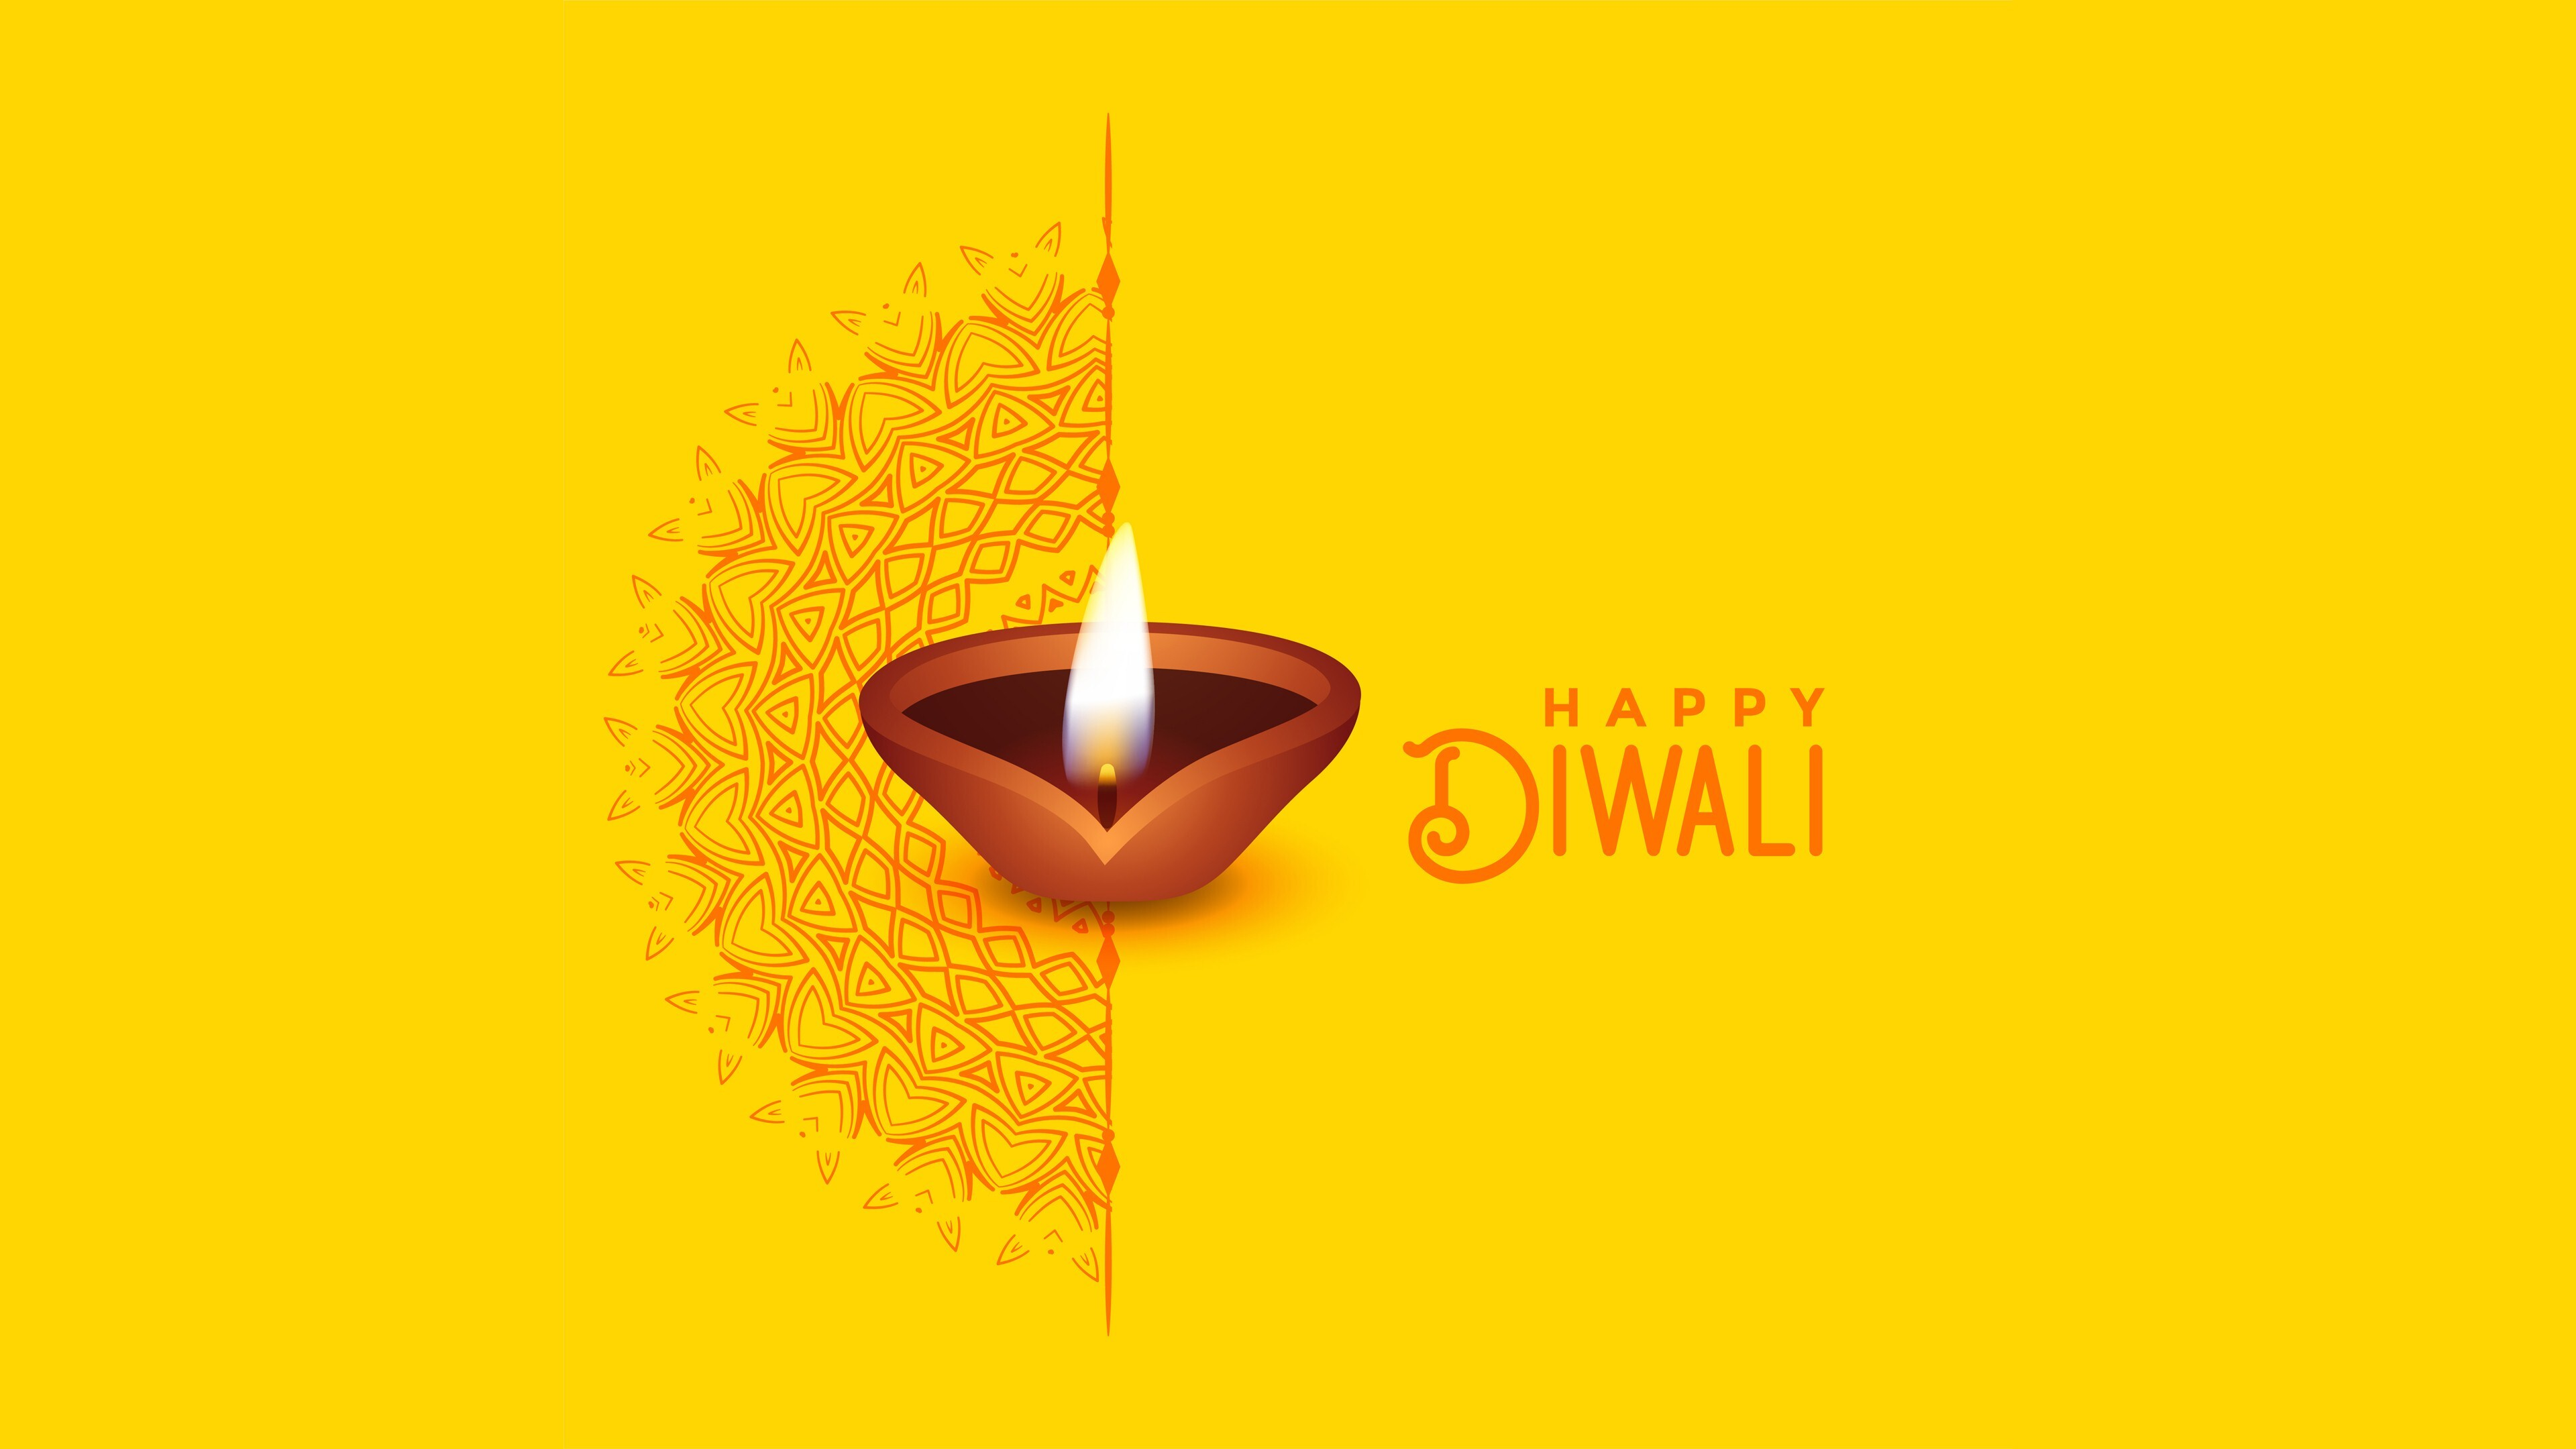 Happy Diwali 4k Wallpaper With Yellow Background Hd Wallpapers